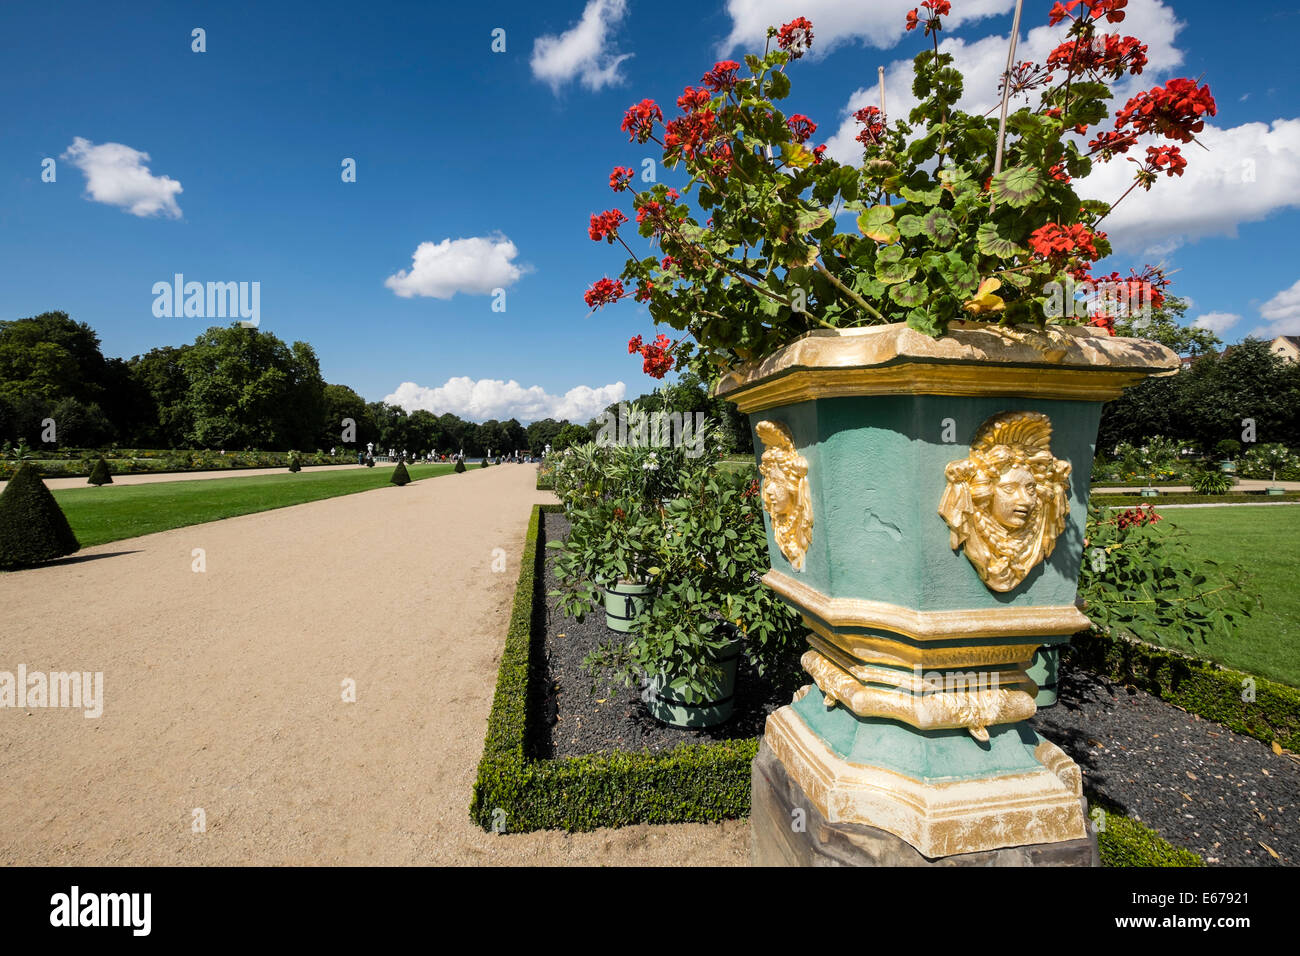 Gardens of the Schloss Charlottenburg Berlin Germany - Stock Image